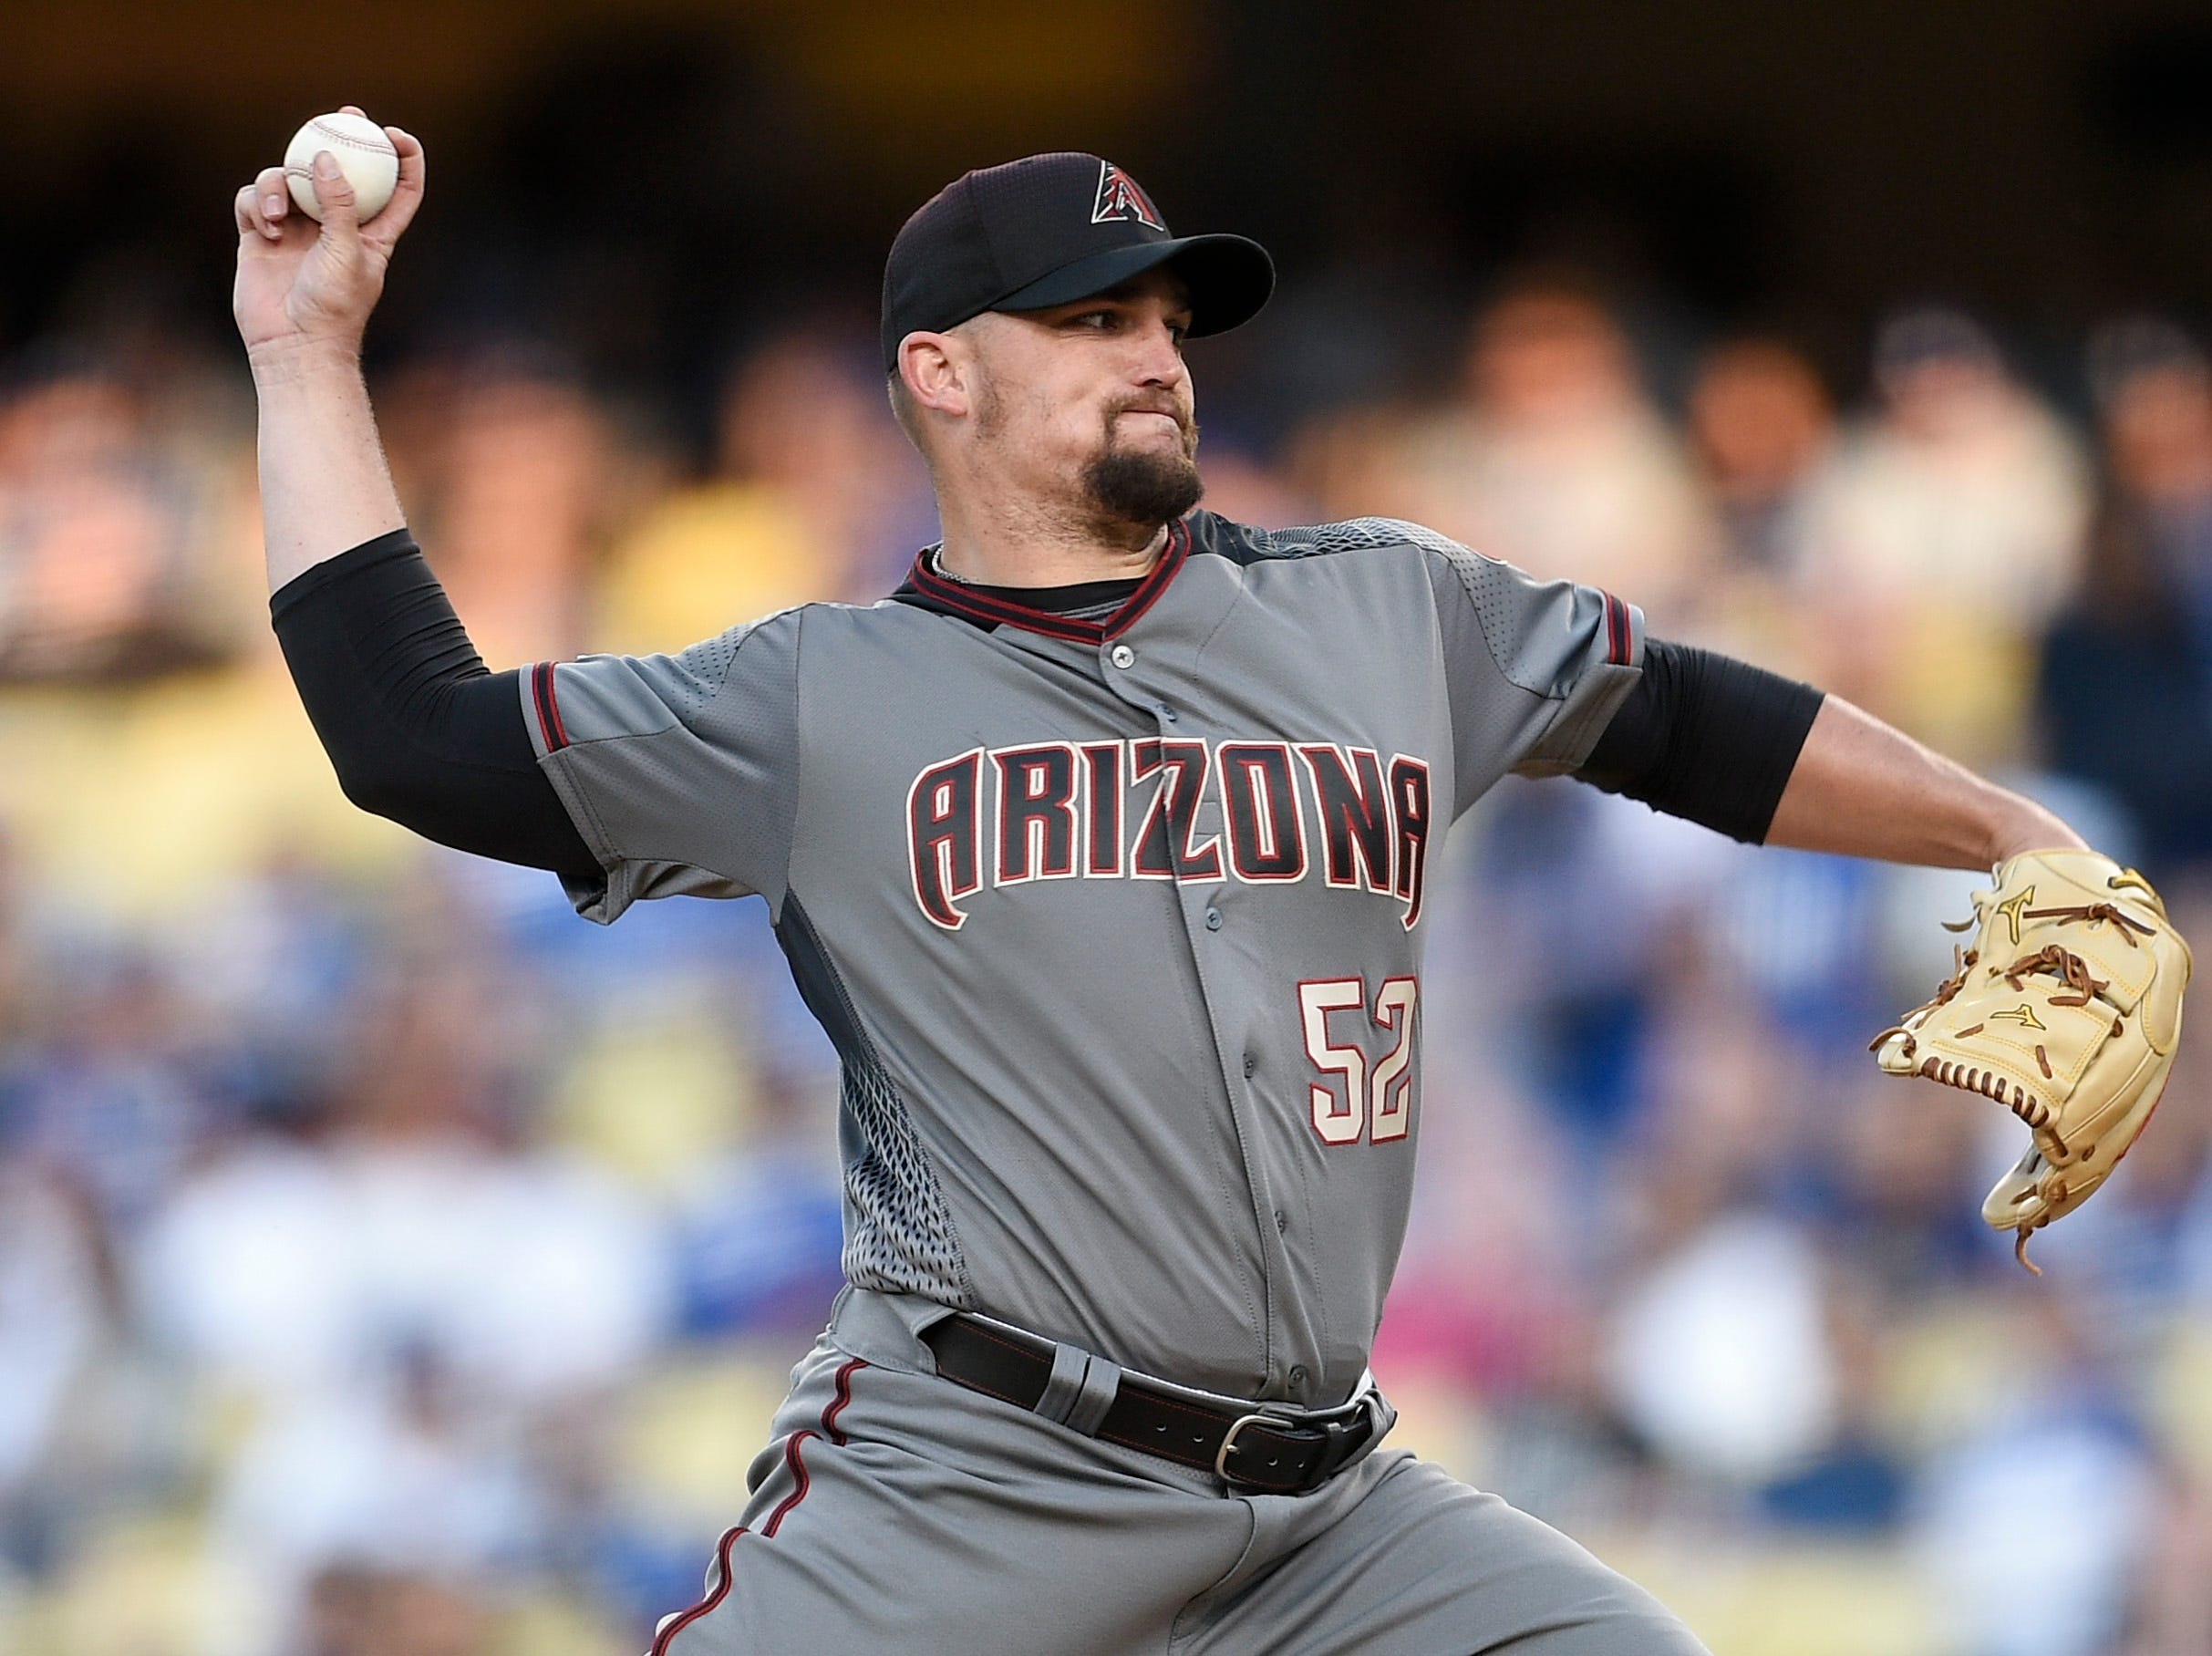 Mar 30, 2019; Los Angeles, CA, USA; Arizona Diamondbacks starting pitcher Zack Godley (52) pitches during the first inning against the Los Angeles Dodgers at Dodger Stadium. Mandatory Credit: Kelvin Kuo-USA TODAY Sports